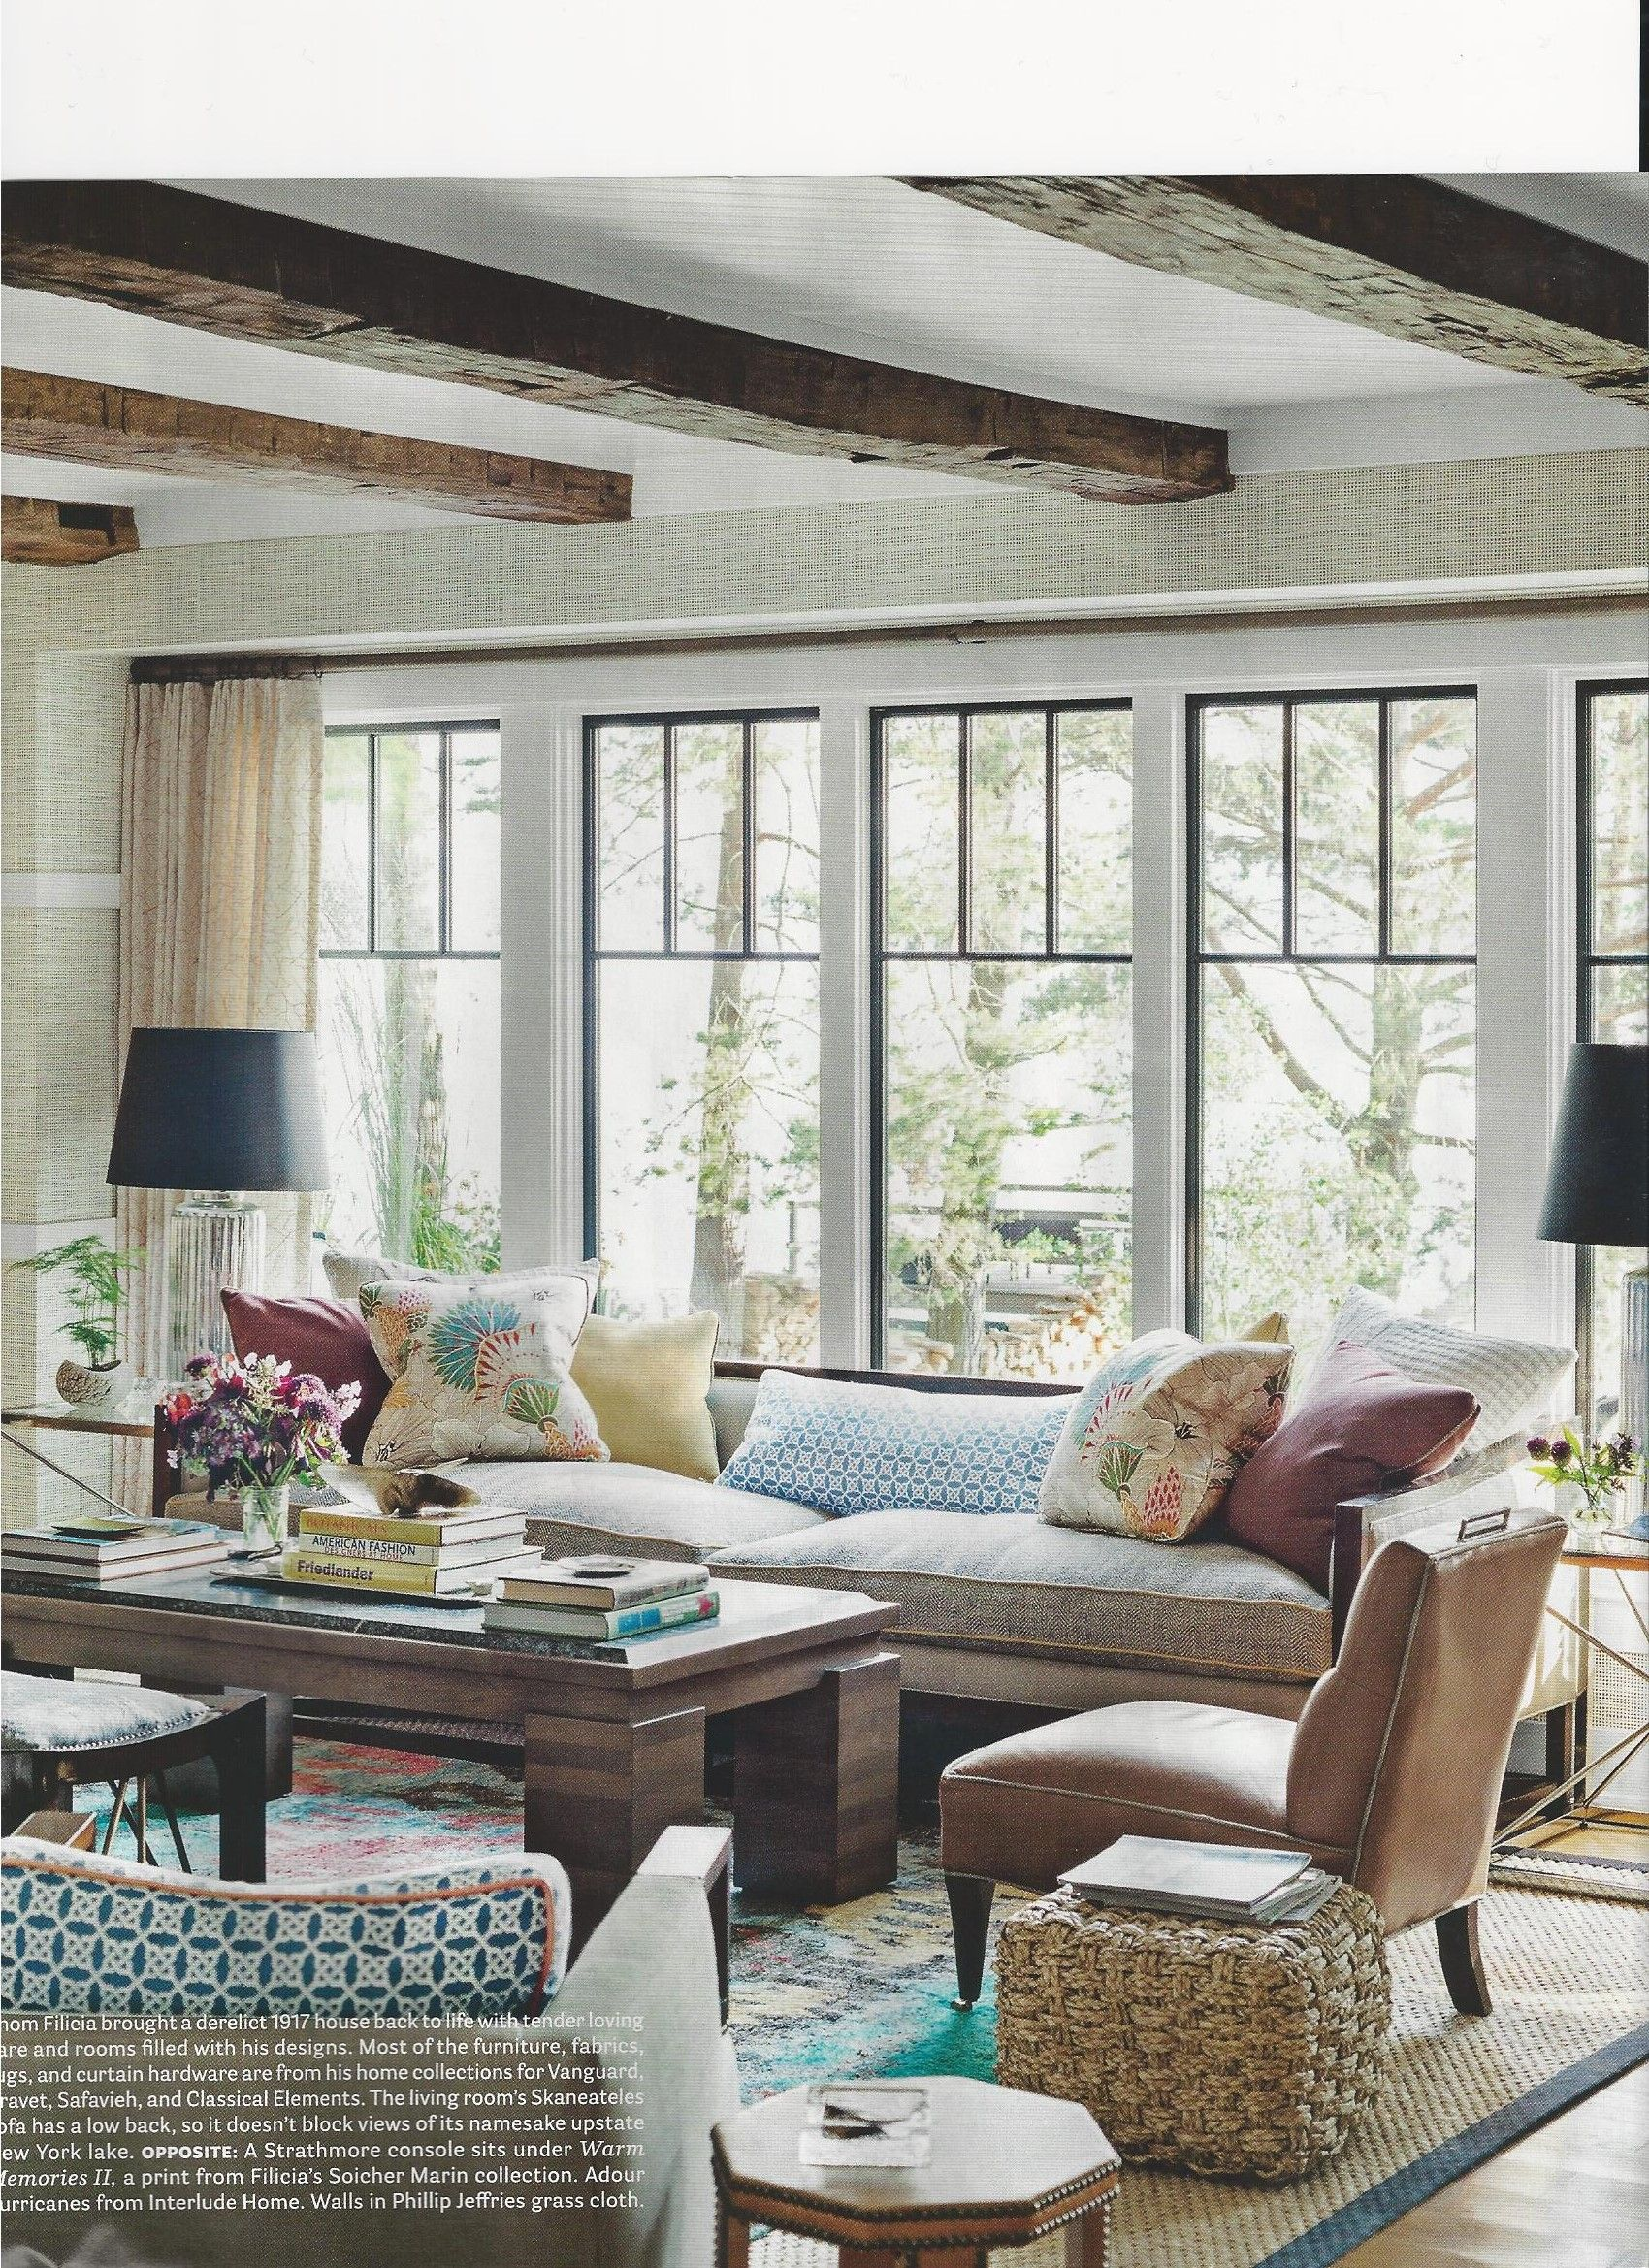 42 Ideas For Living Room Small Rustic Beams Livingroom: Beams Are Very Effective In A Beach Setting!